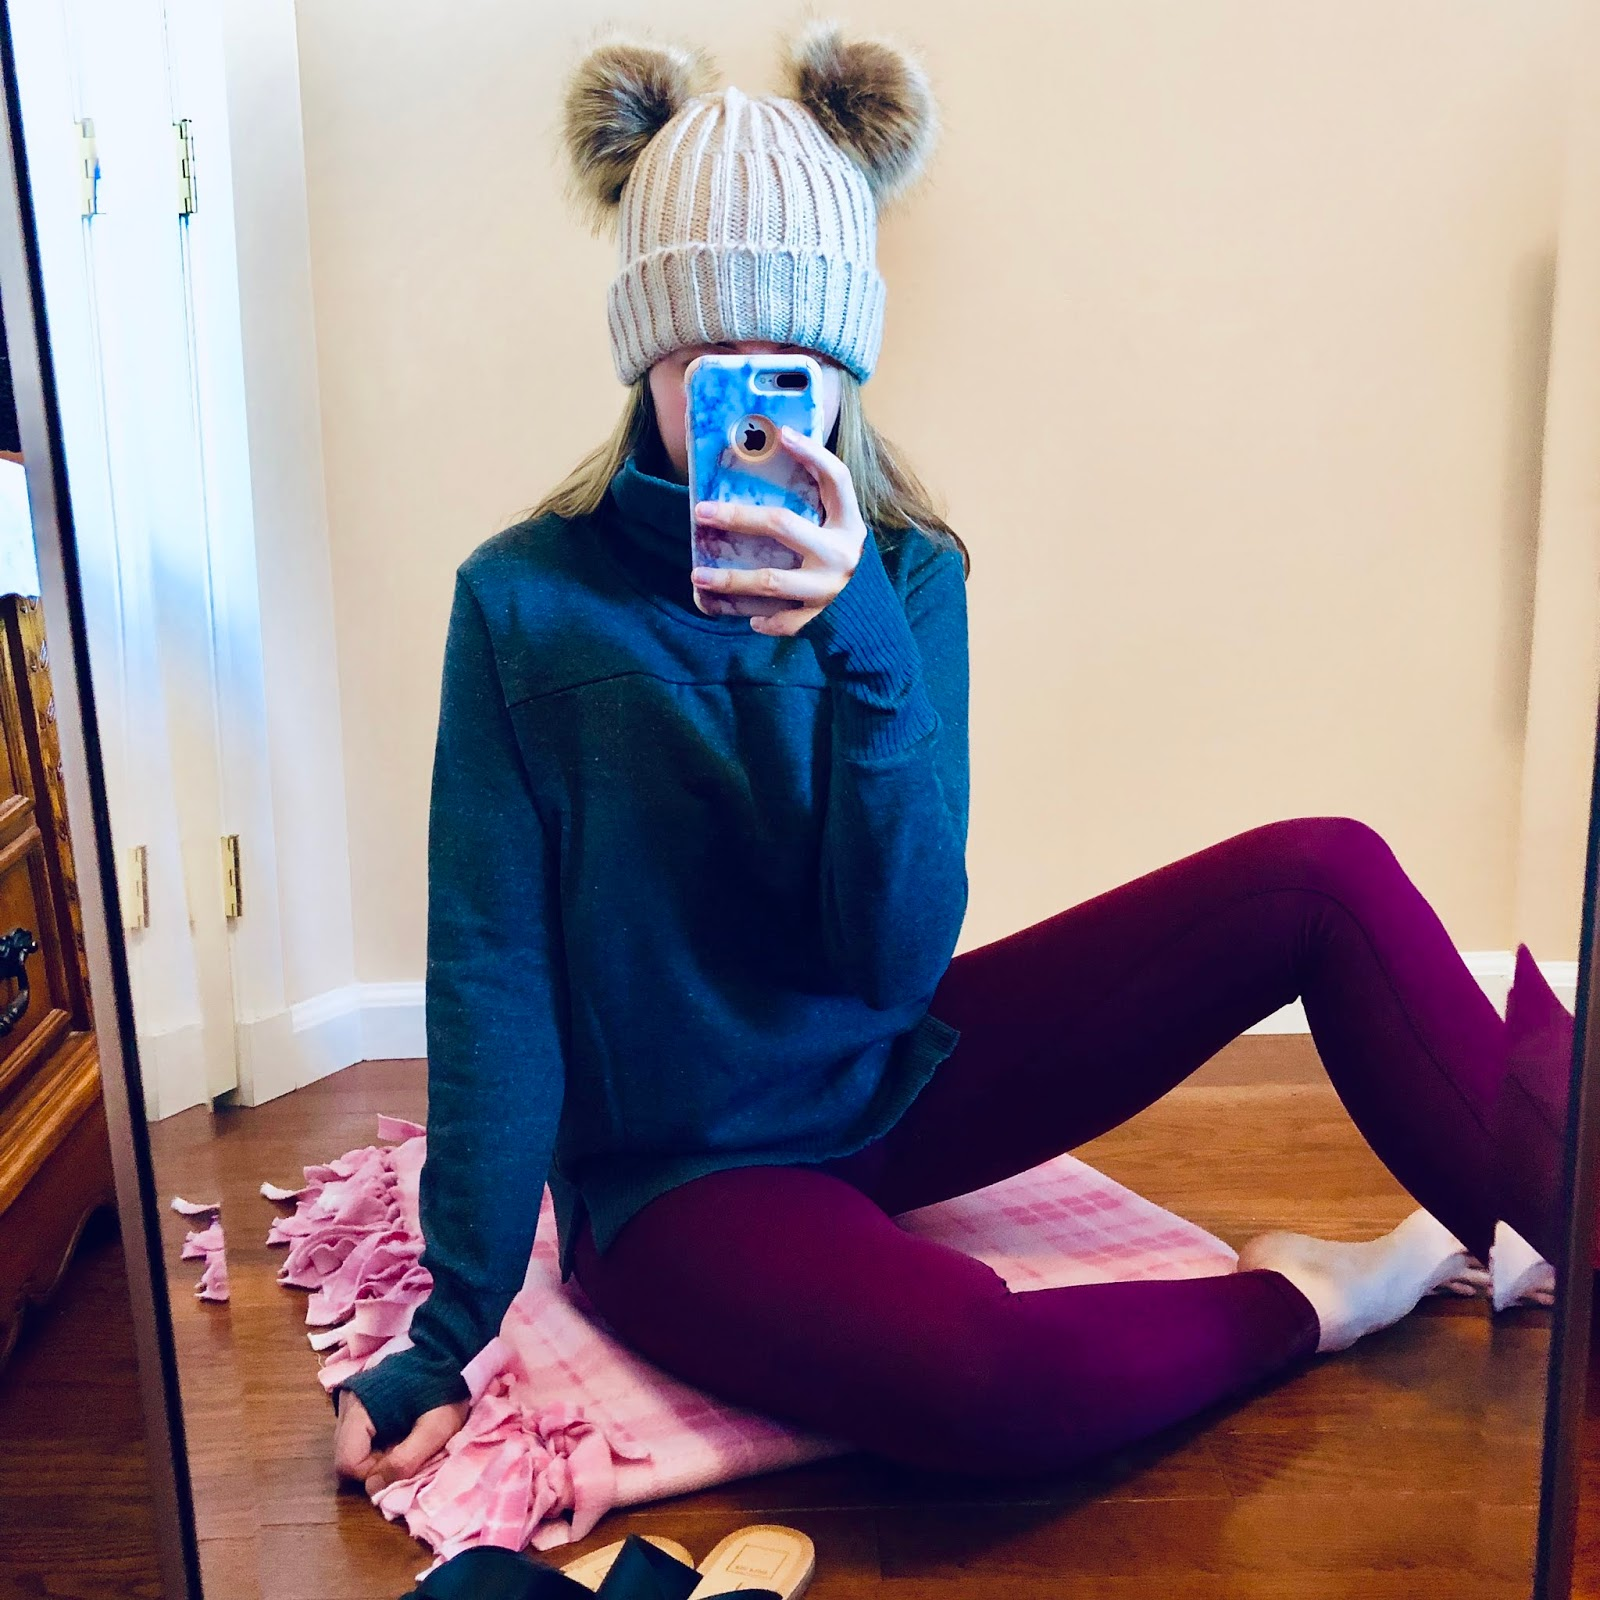 Abercrombie and fitch, amazon, amazon haul, cold weather, iceland packing list, packing for iceland, sweater weather, What to Pack for Two Weeks in Iceland Haul, what to wear in cold weather,